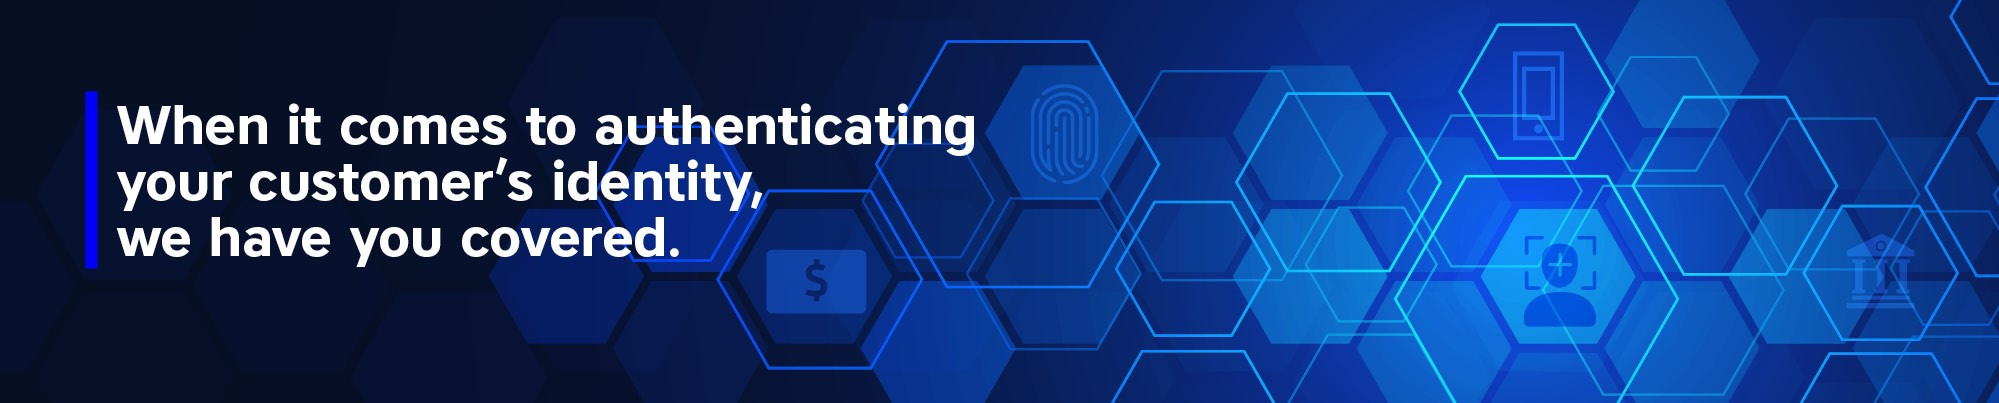 When it comes to authenticating your customer's identity, we have you covered.